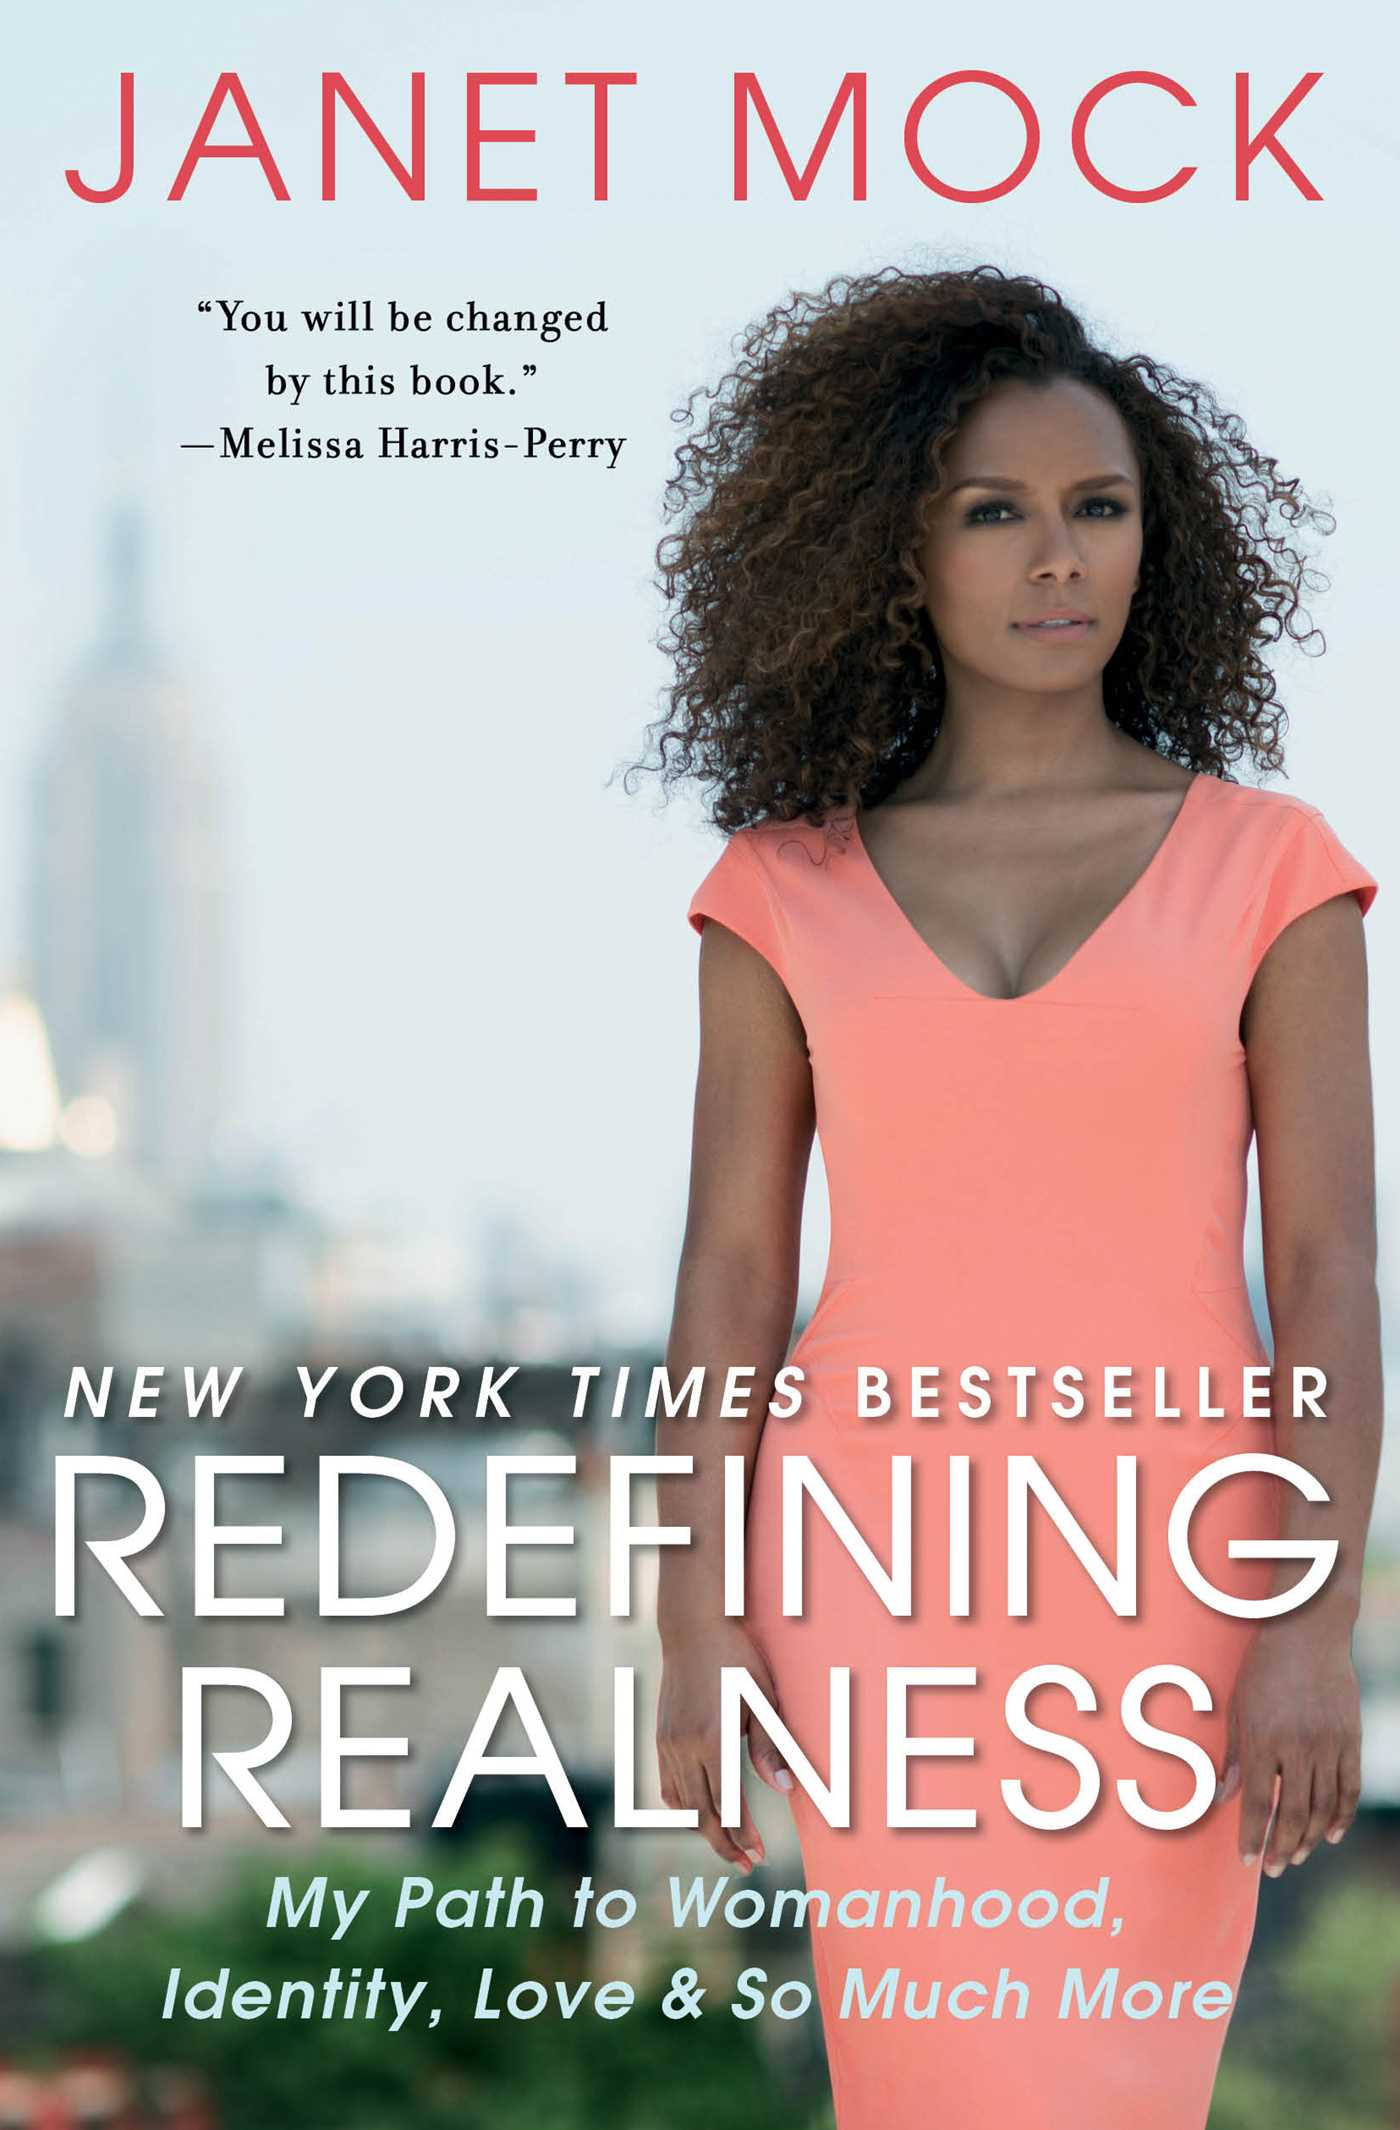 Redefining Realness (My Path to Womanhood, Identity, Love & So Much More): Part 3/ Chapters 11 to 18 [End of Book] - Overview/ Review (with Spoilers)